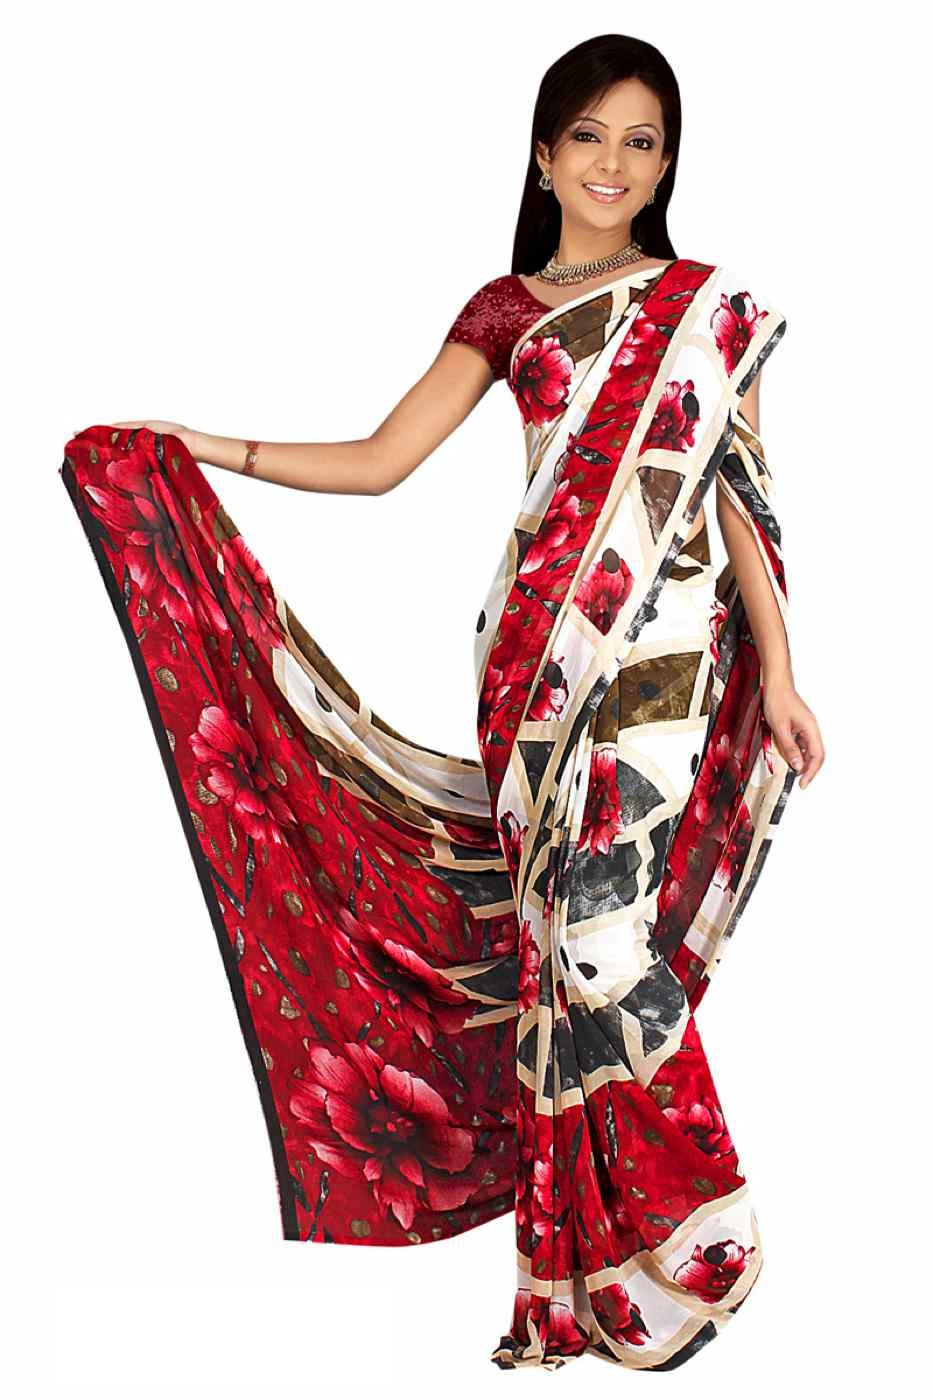 Indian Selections Dharti Georgette Printed Casual Saree Sari Bellydance fabric at Sears.com